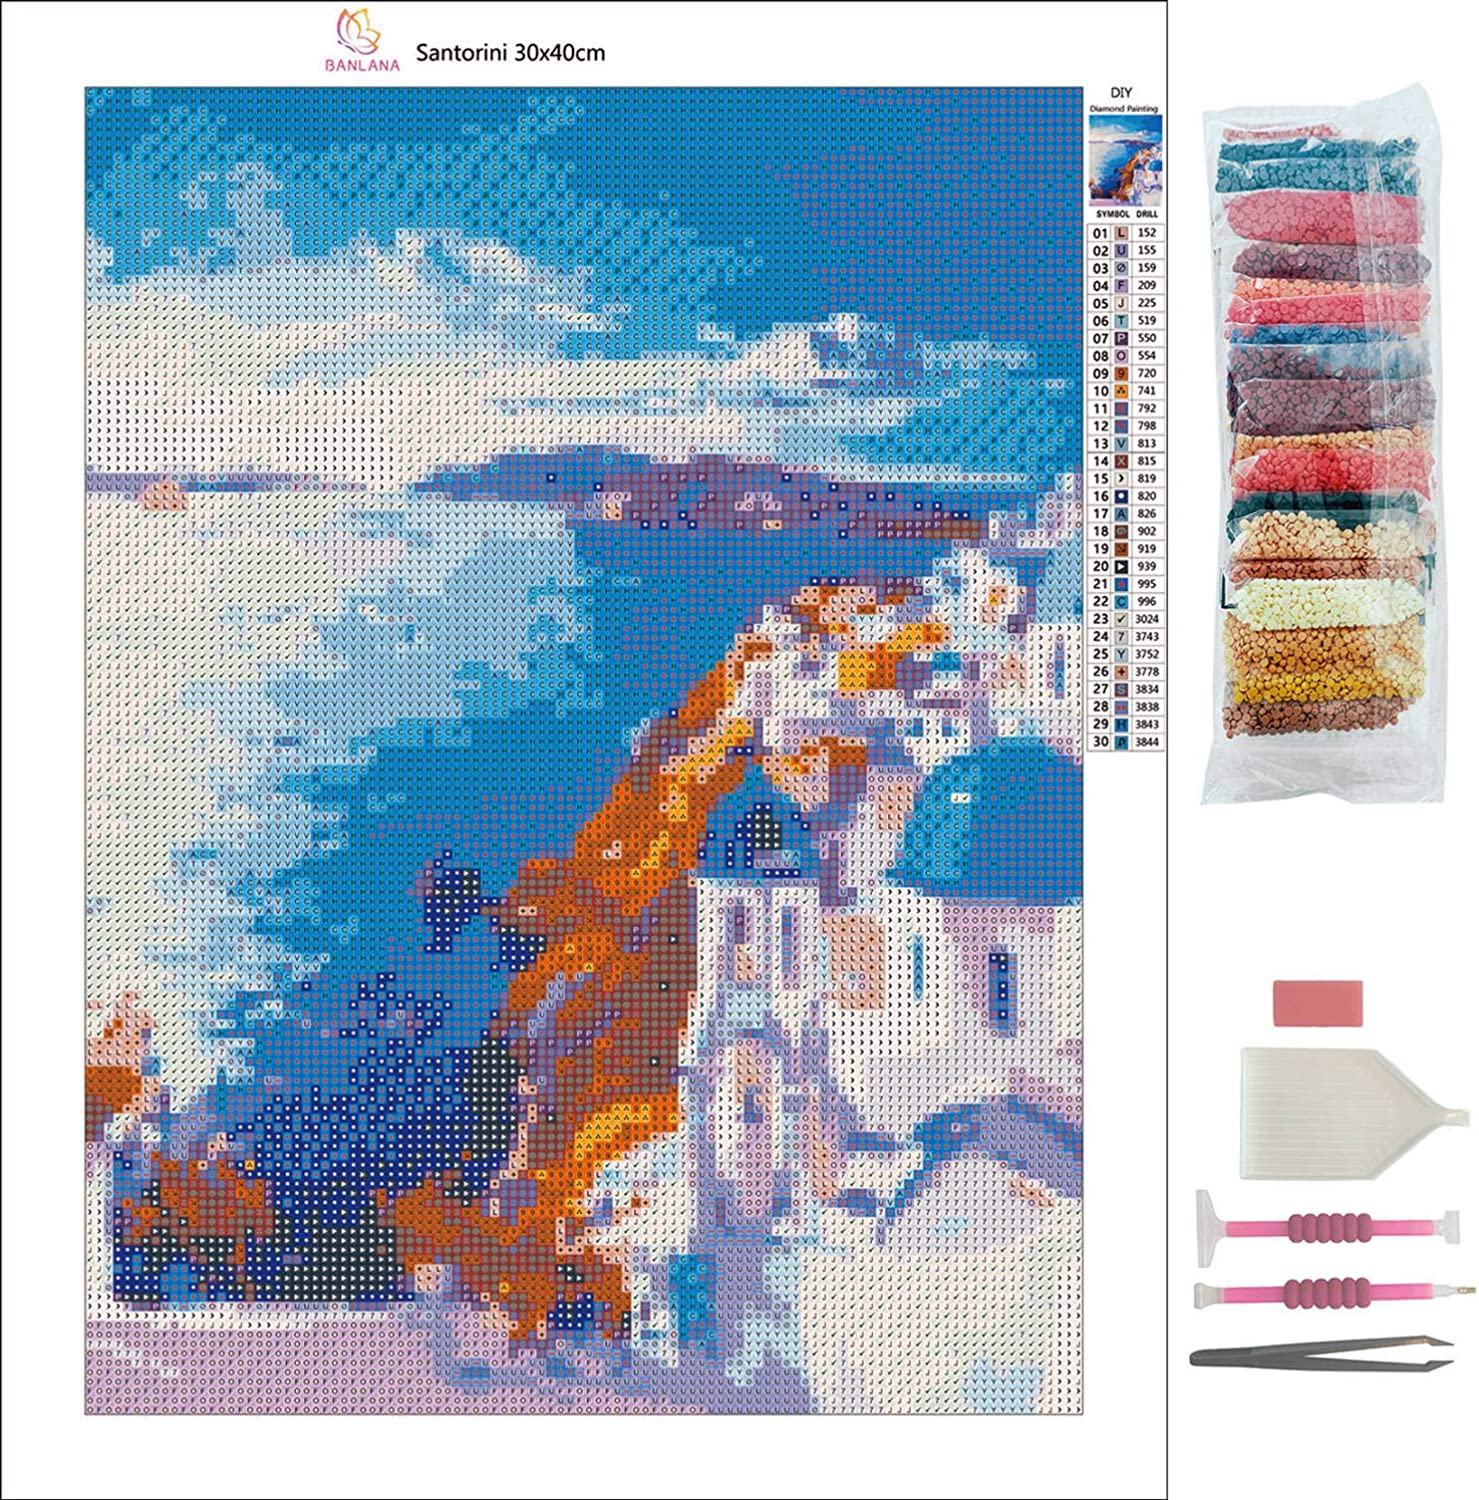 5D Diamond Painting Kits for Adults by BANLANA 12 by 16 Arts Craft for Home Wall Decor DIY Cross Stitch Crystal Rhinestone Embroidery Pictures Art Kit with Premium Tools Santorini